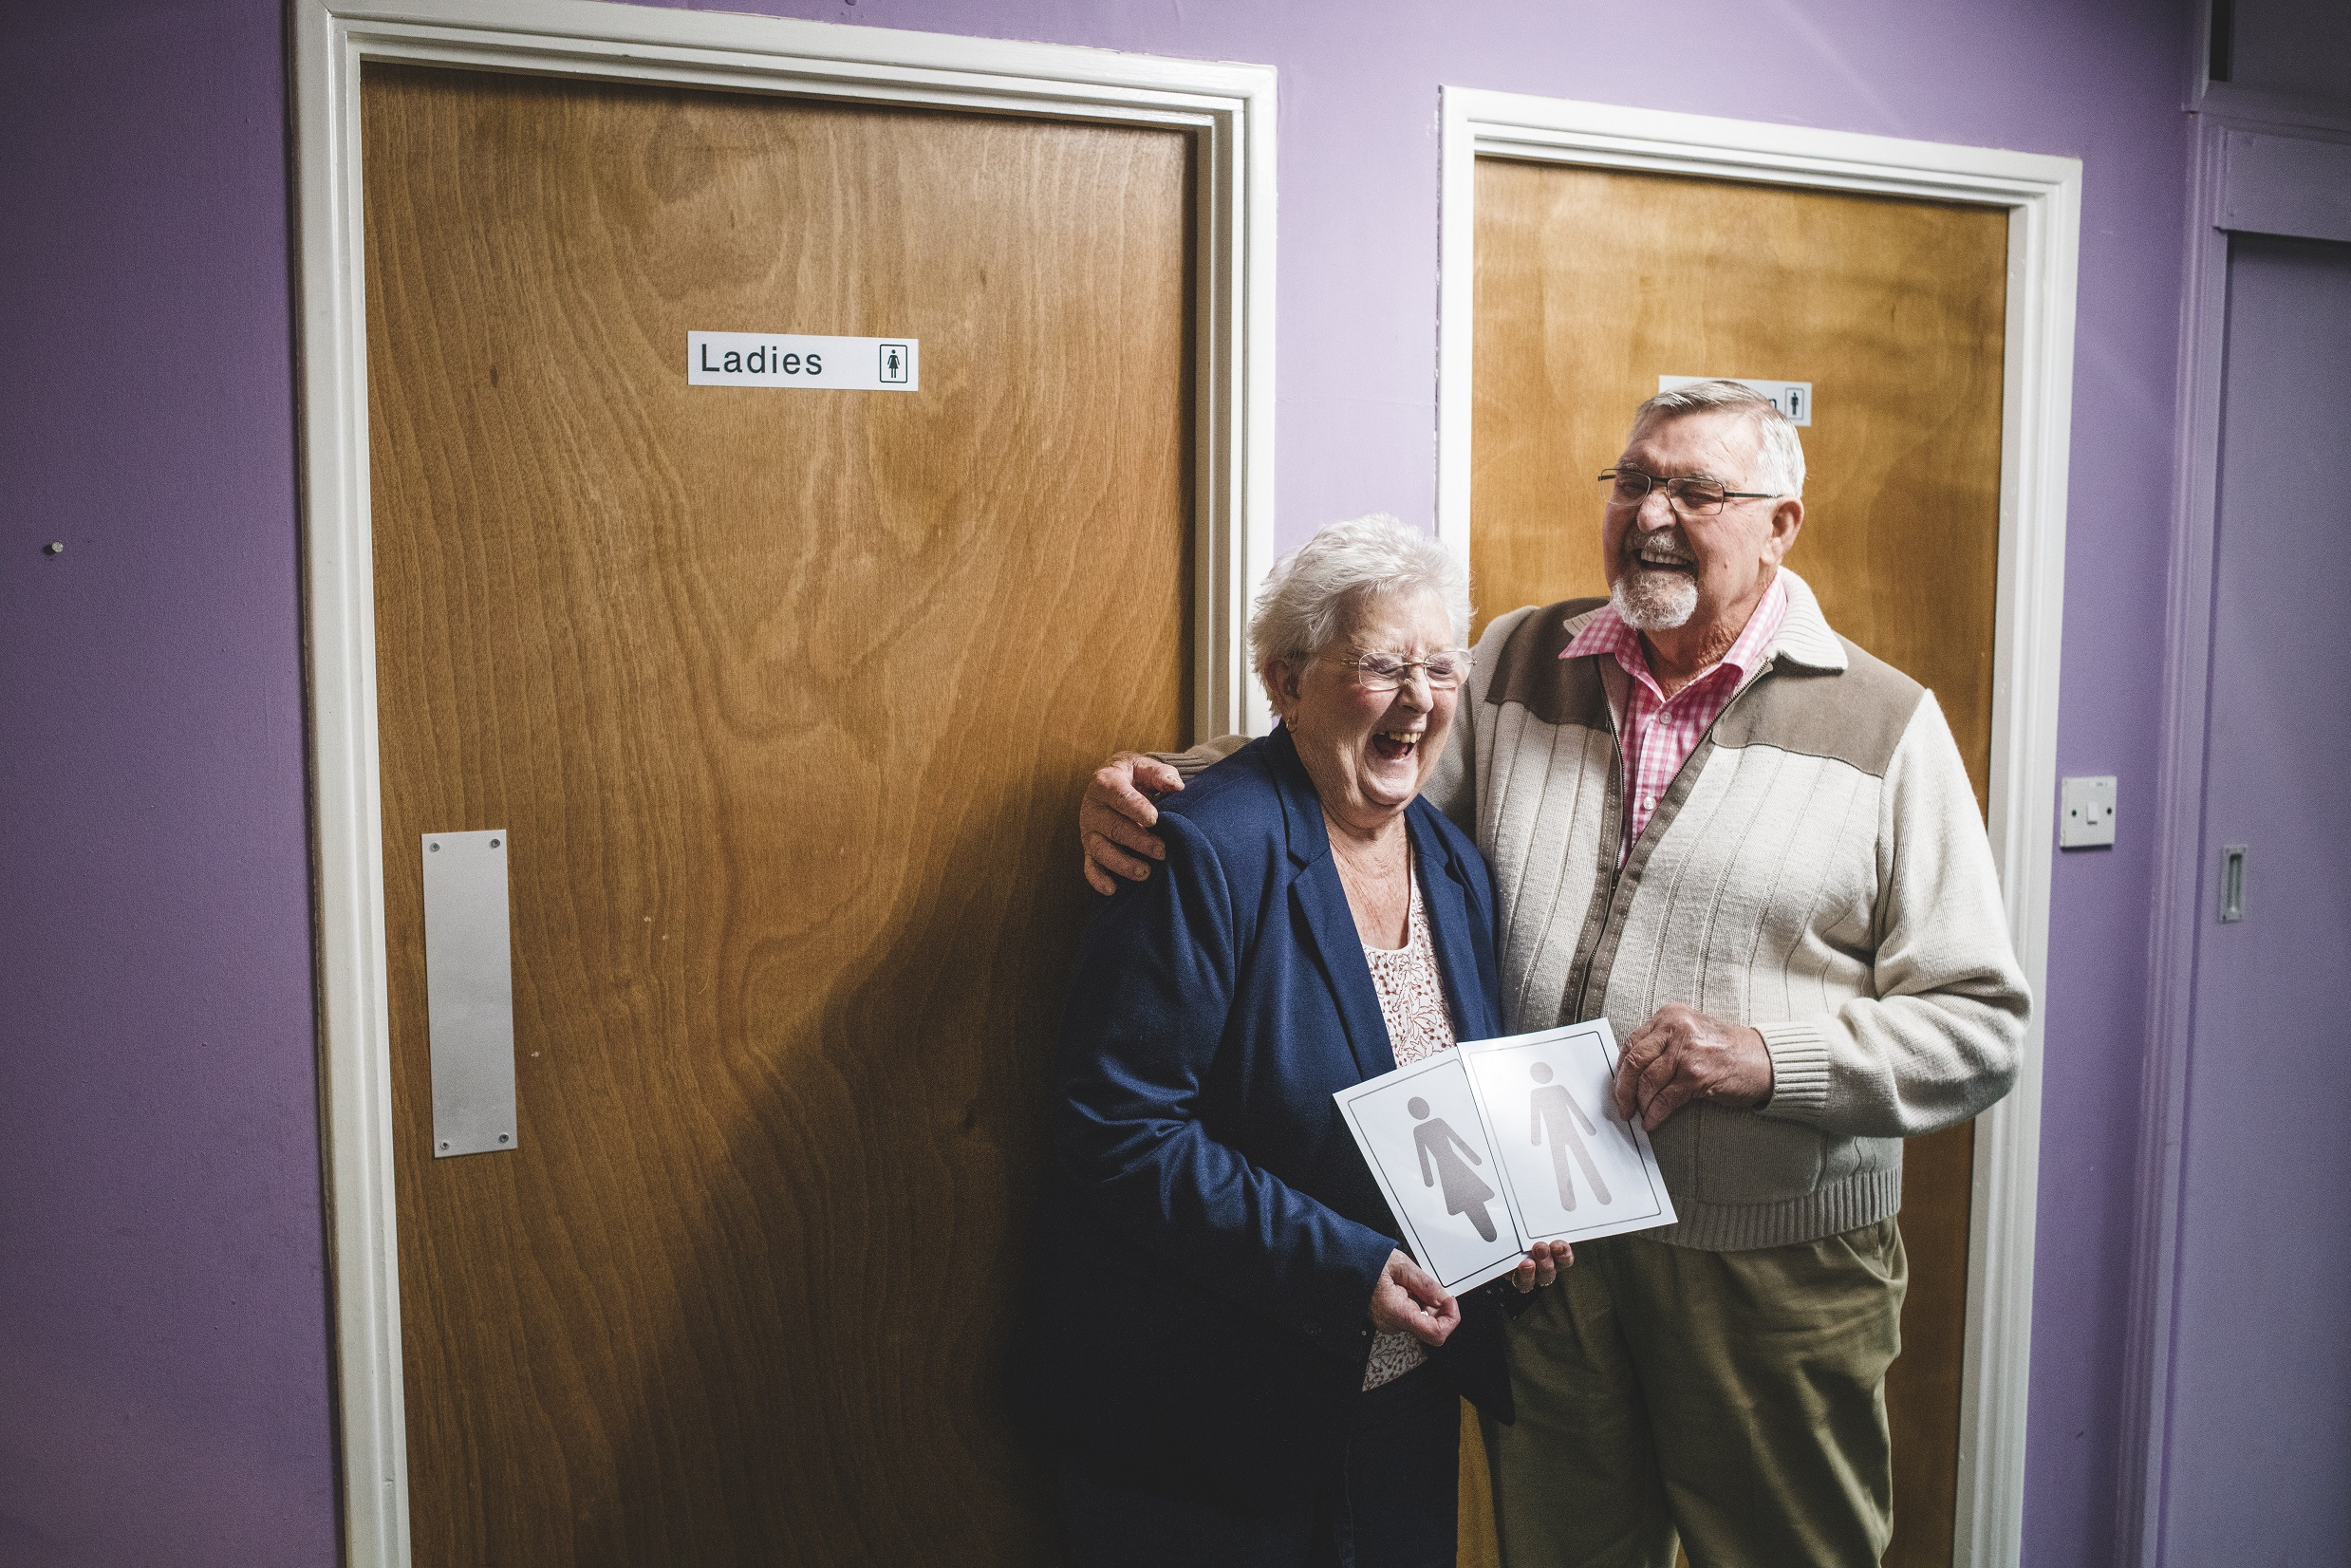 Dennis and Shirley Banfield paid for new toilets at their local community centre in Winterbourne, Bristol (Camelot/PA)